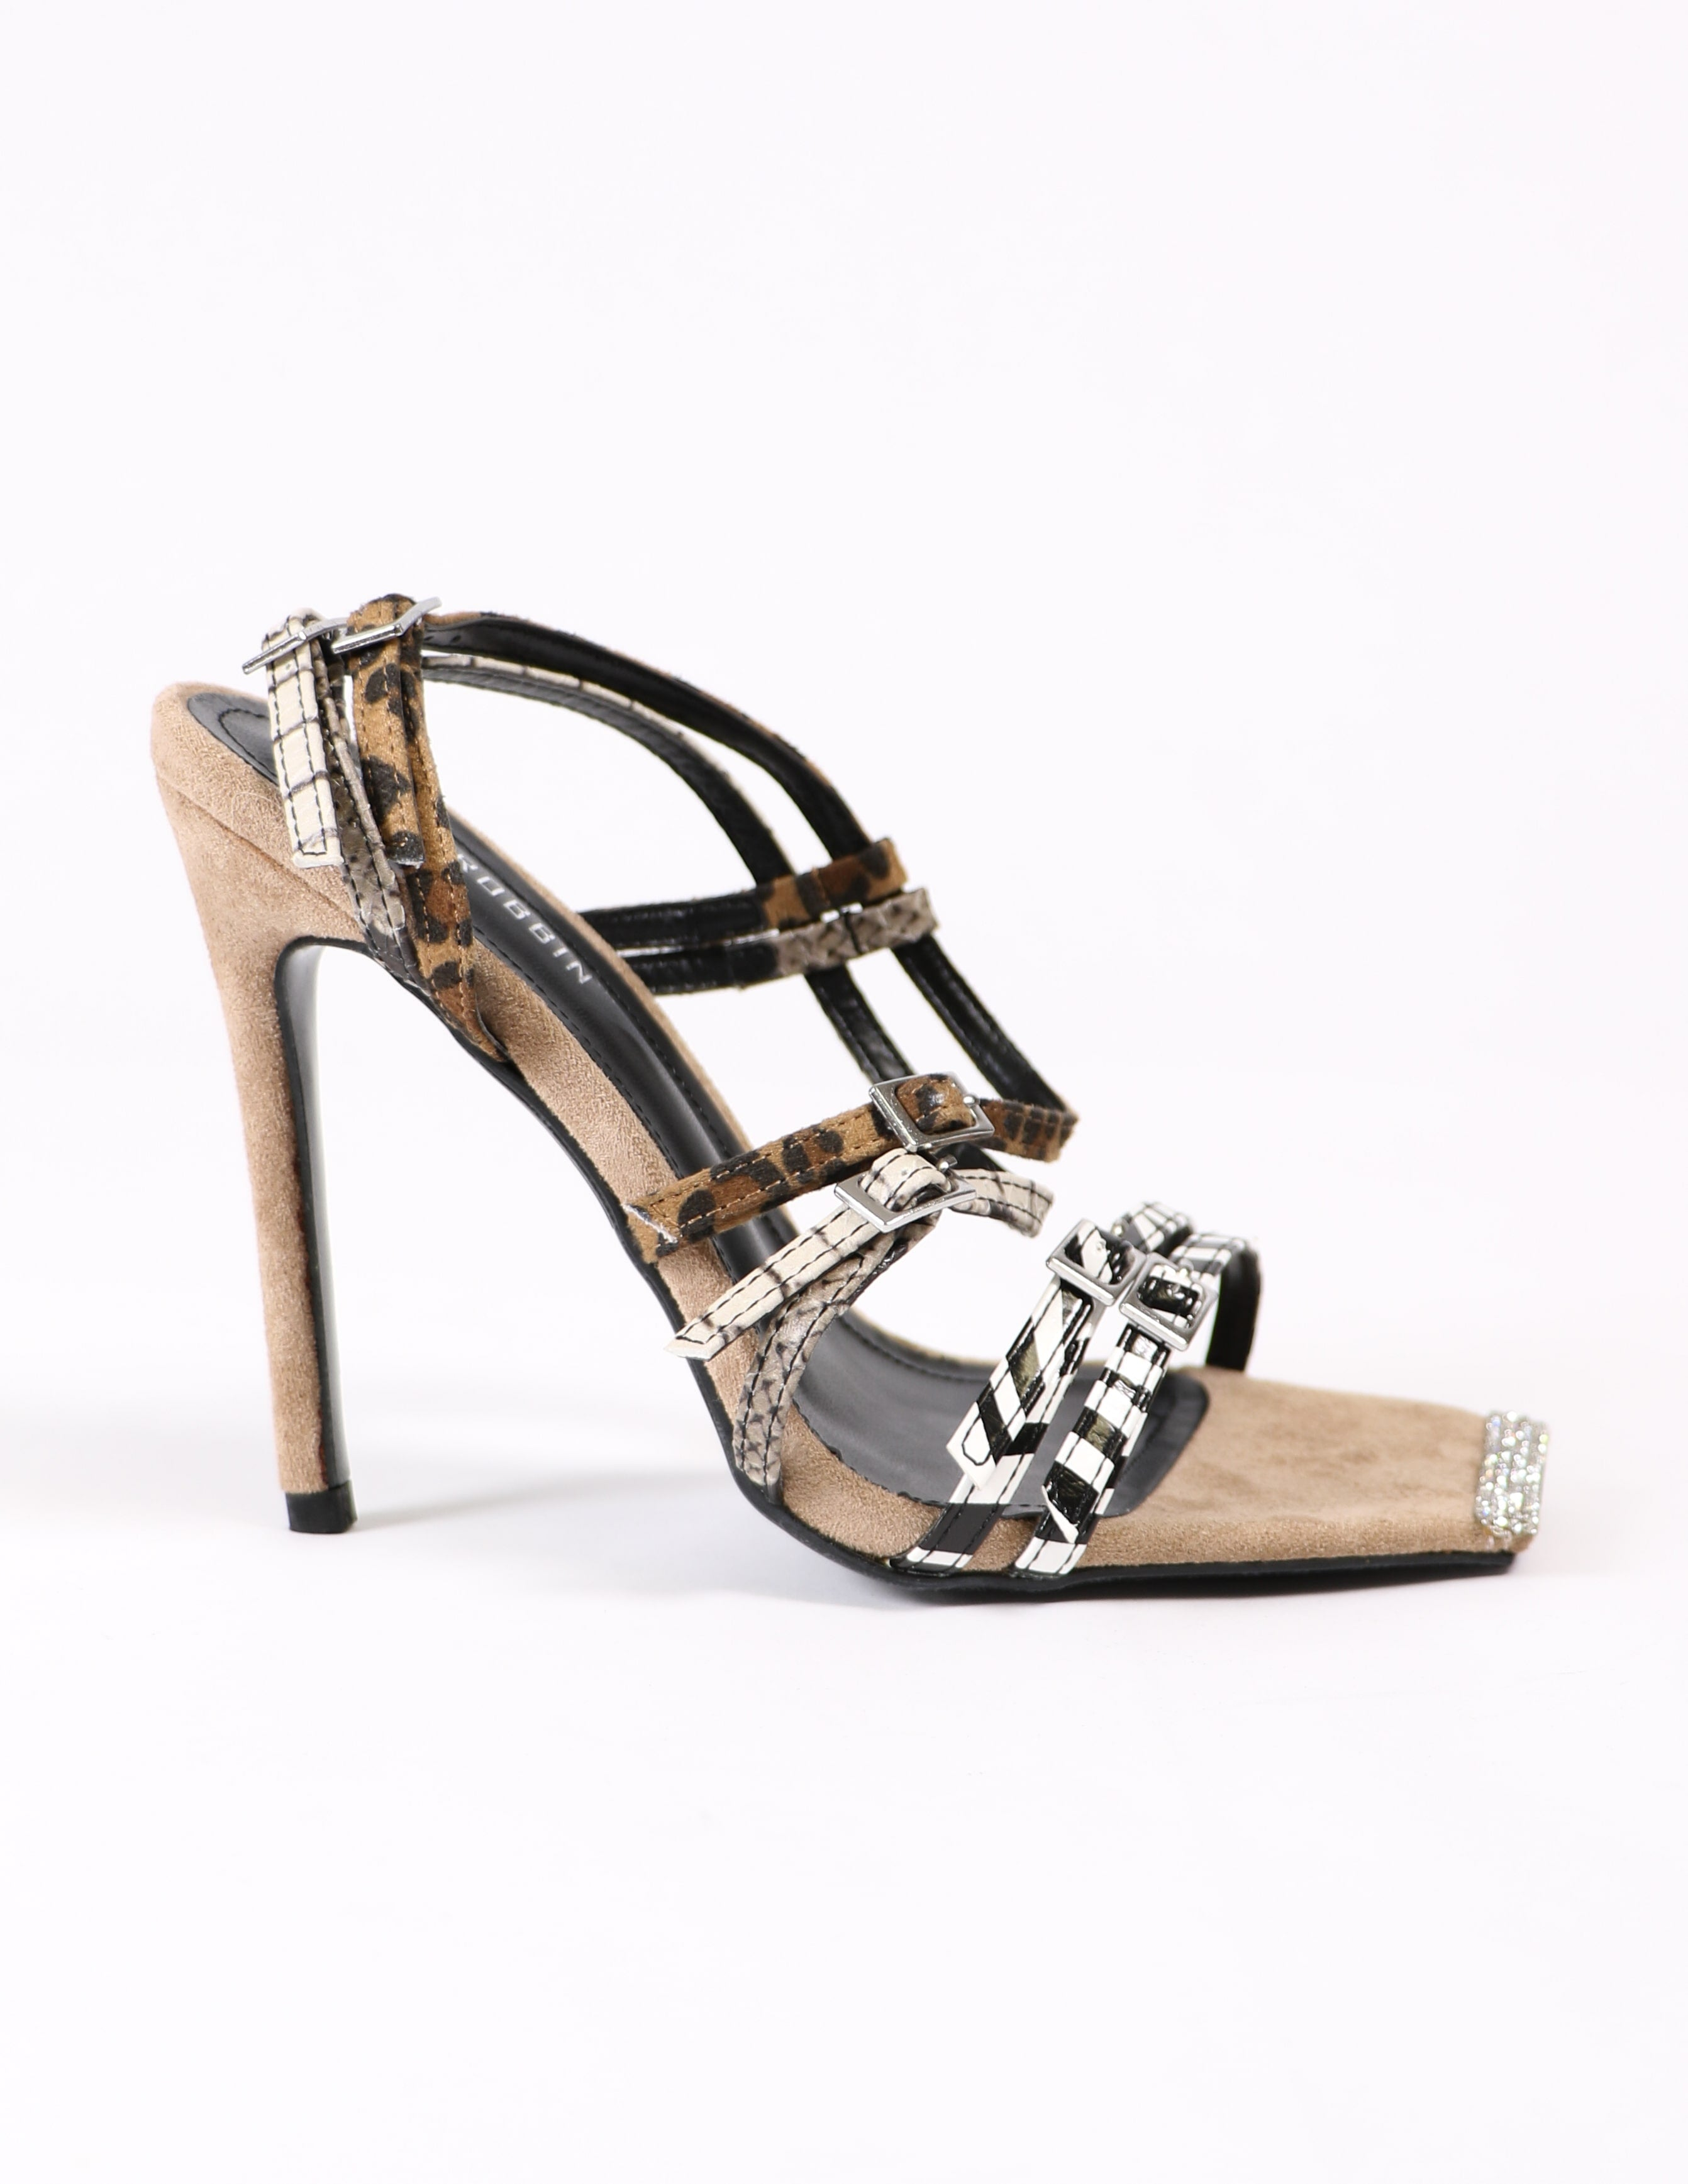 strappy buckle animal print heels on white background - elle bleu shoes